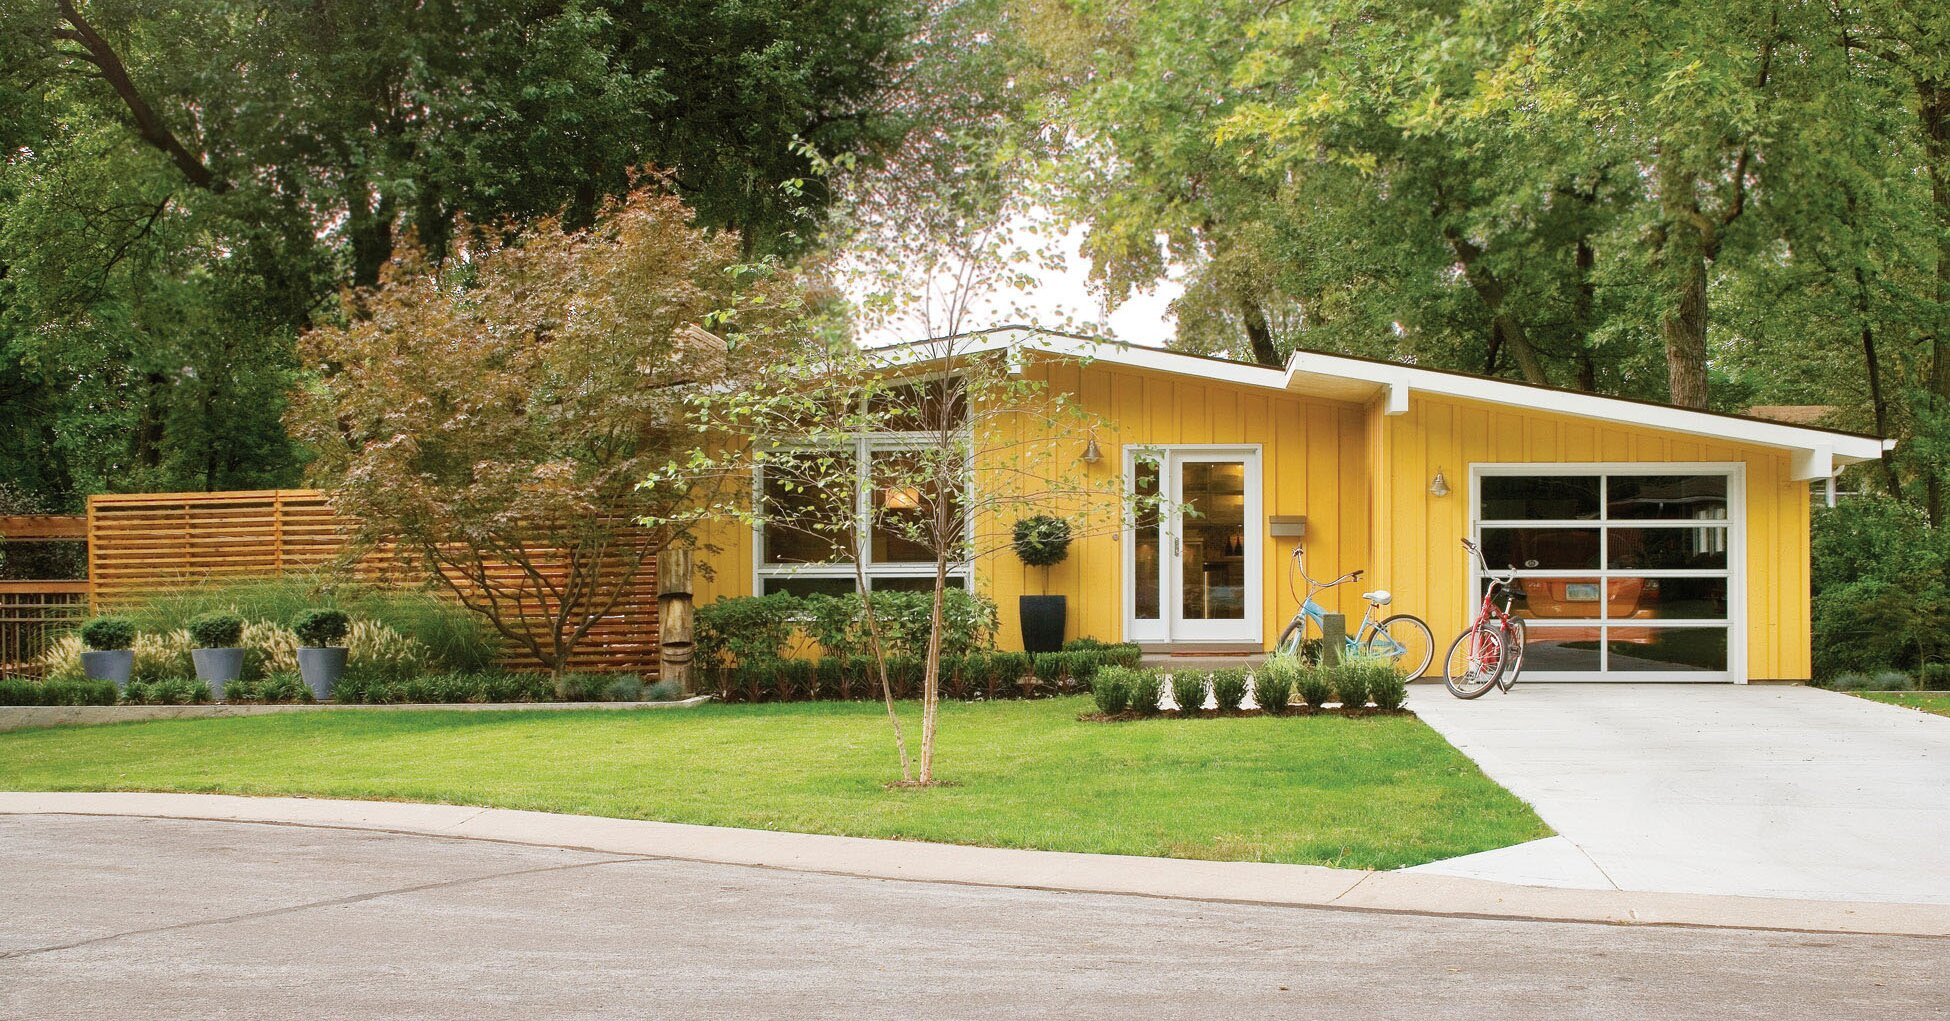 Our Favorite Ranch Style Home Ideas